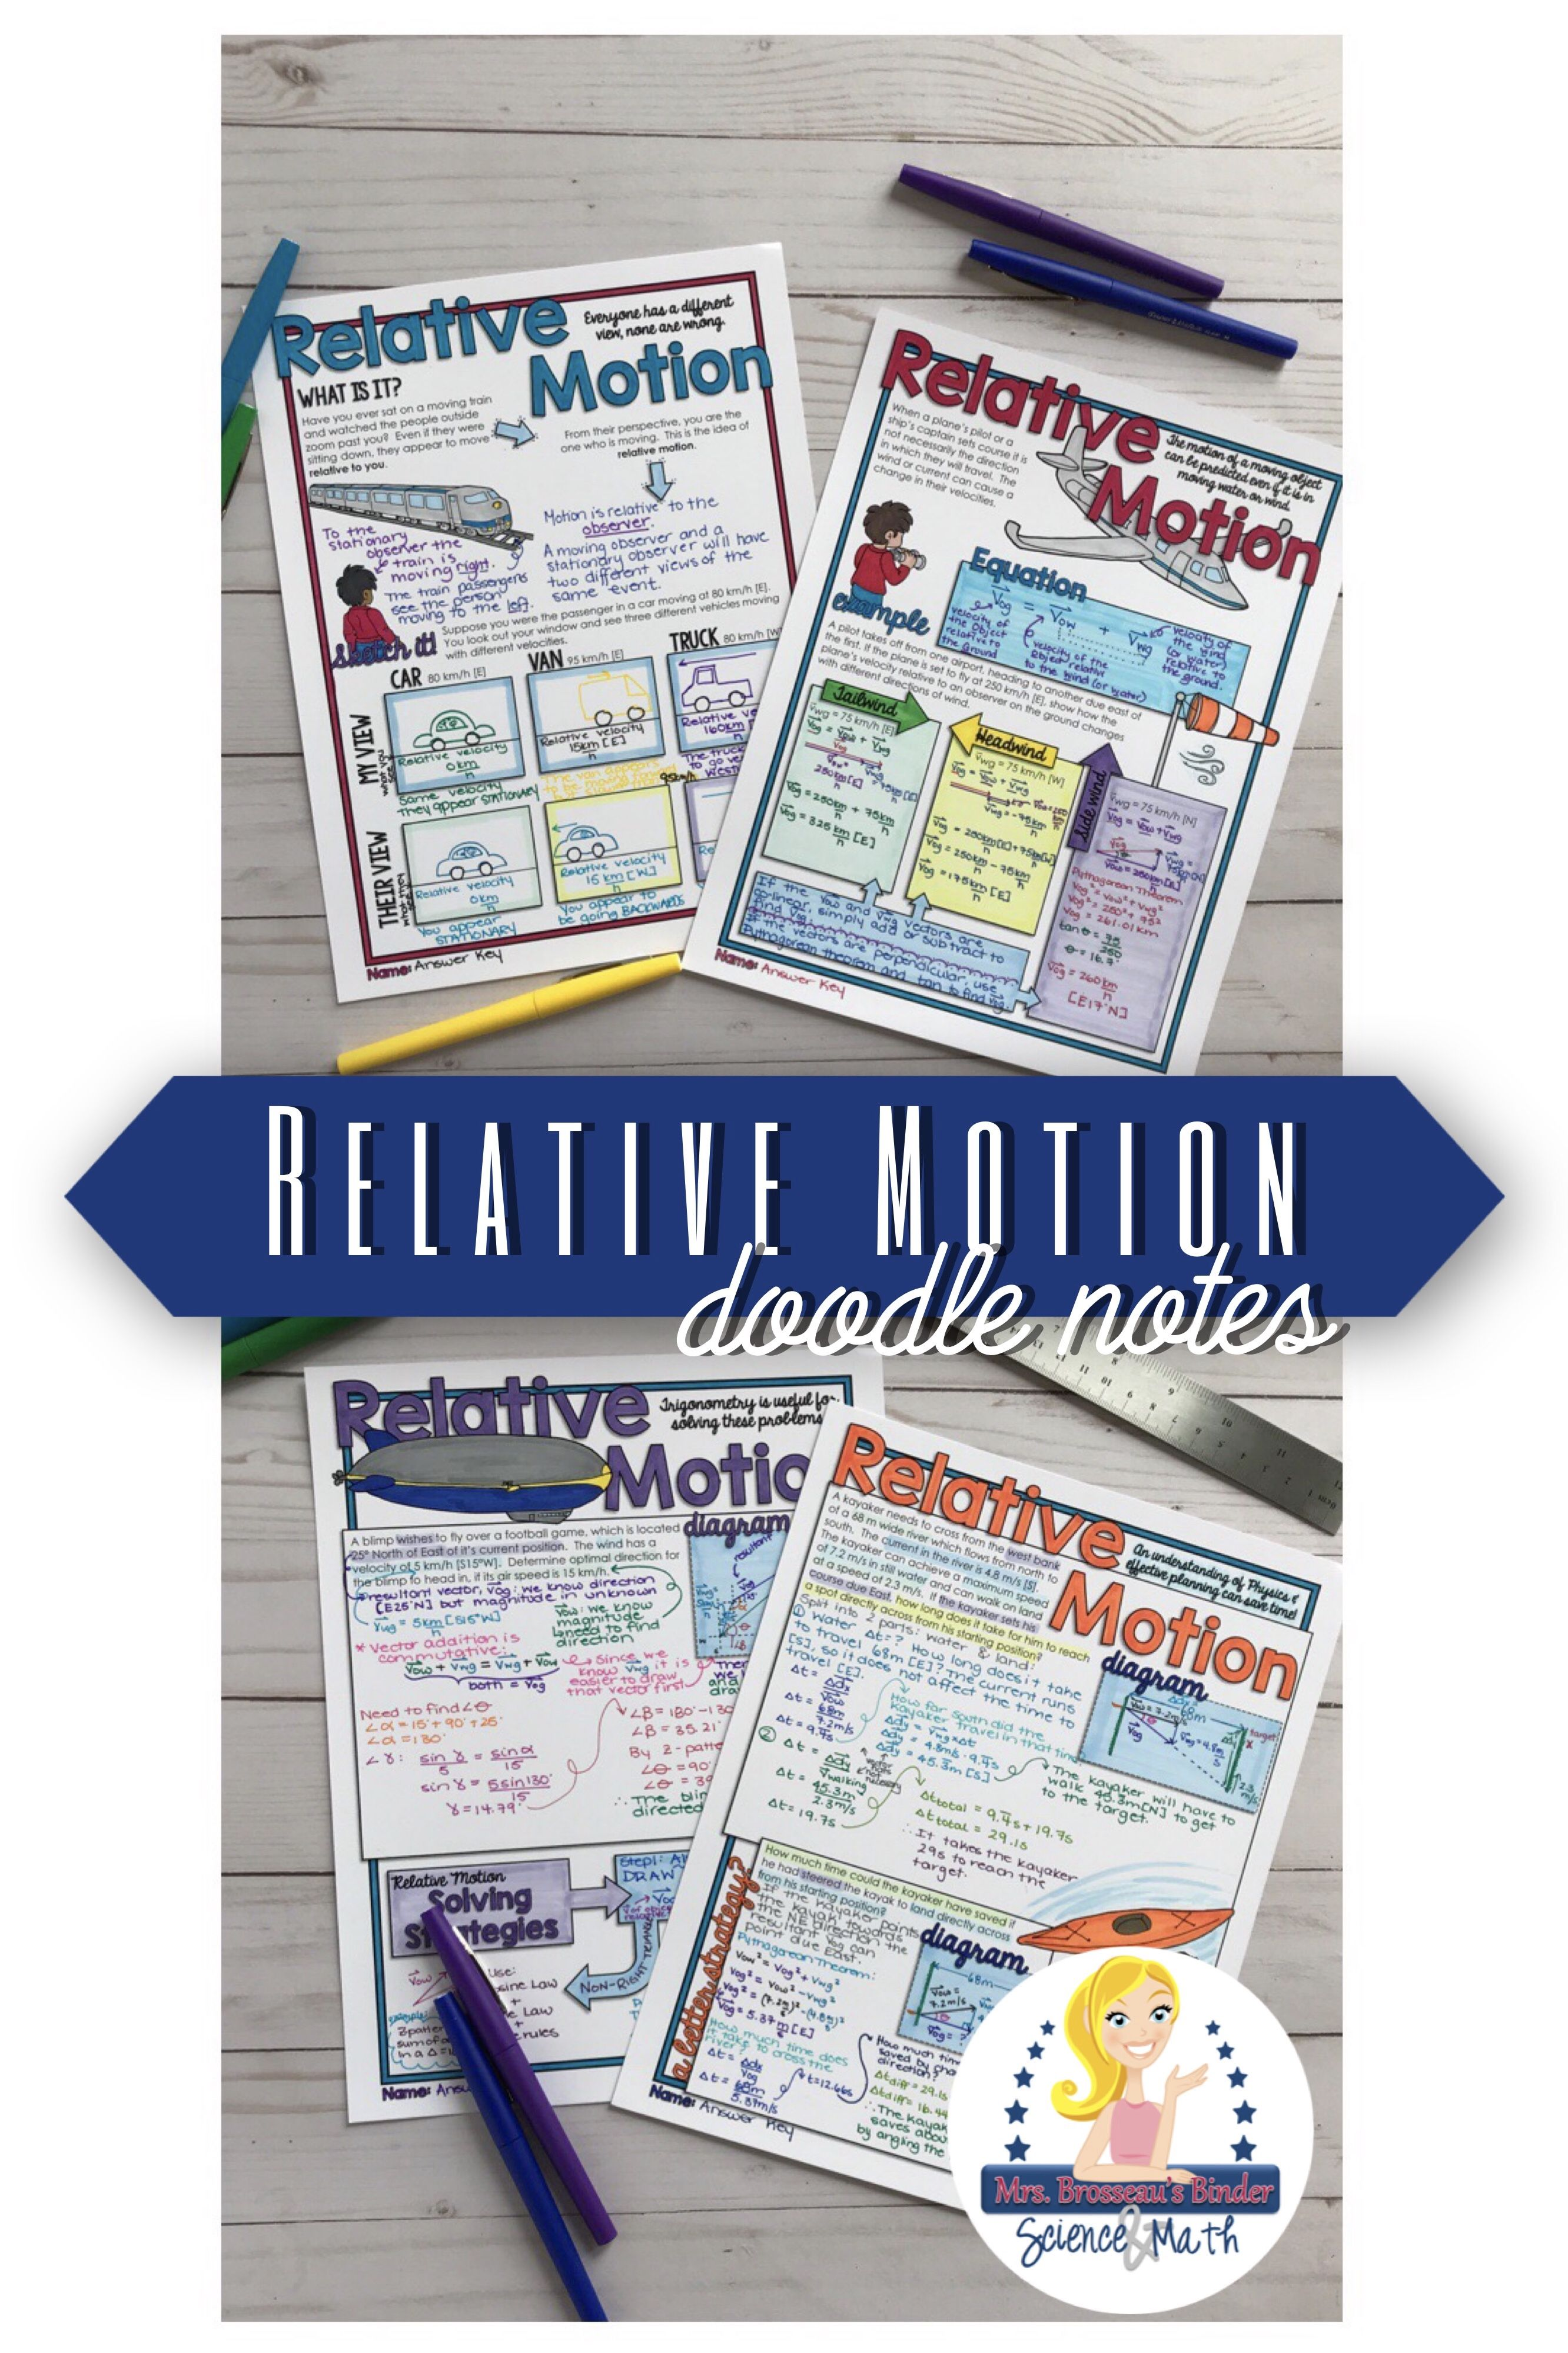 Fresh Ideas - Relative Motion Doodle Notes for Physics Relative